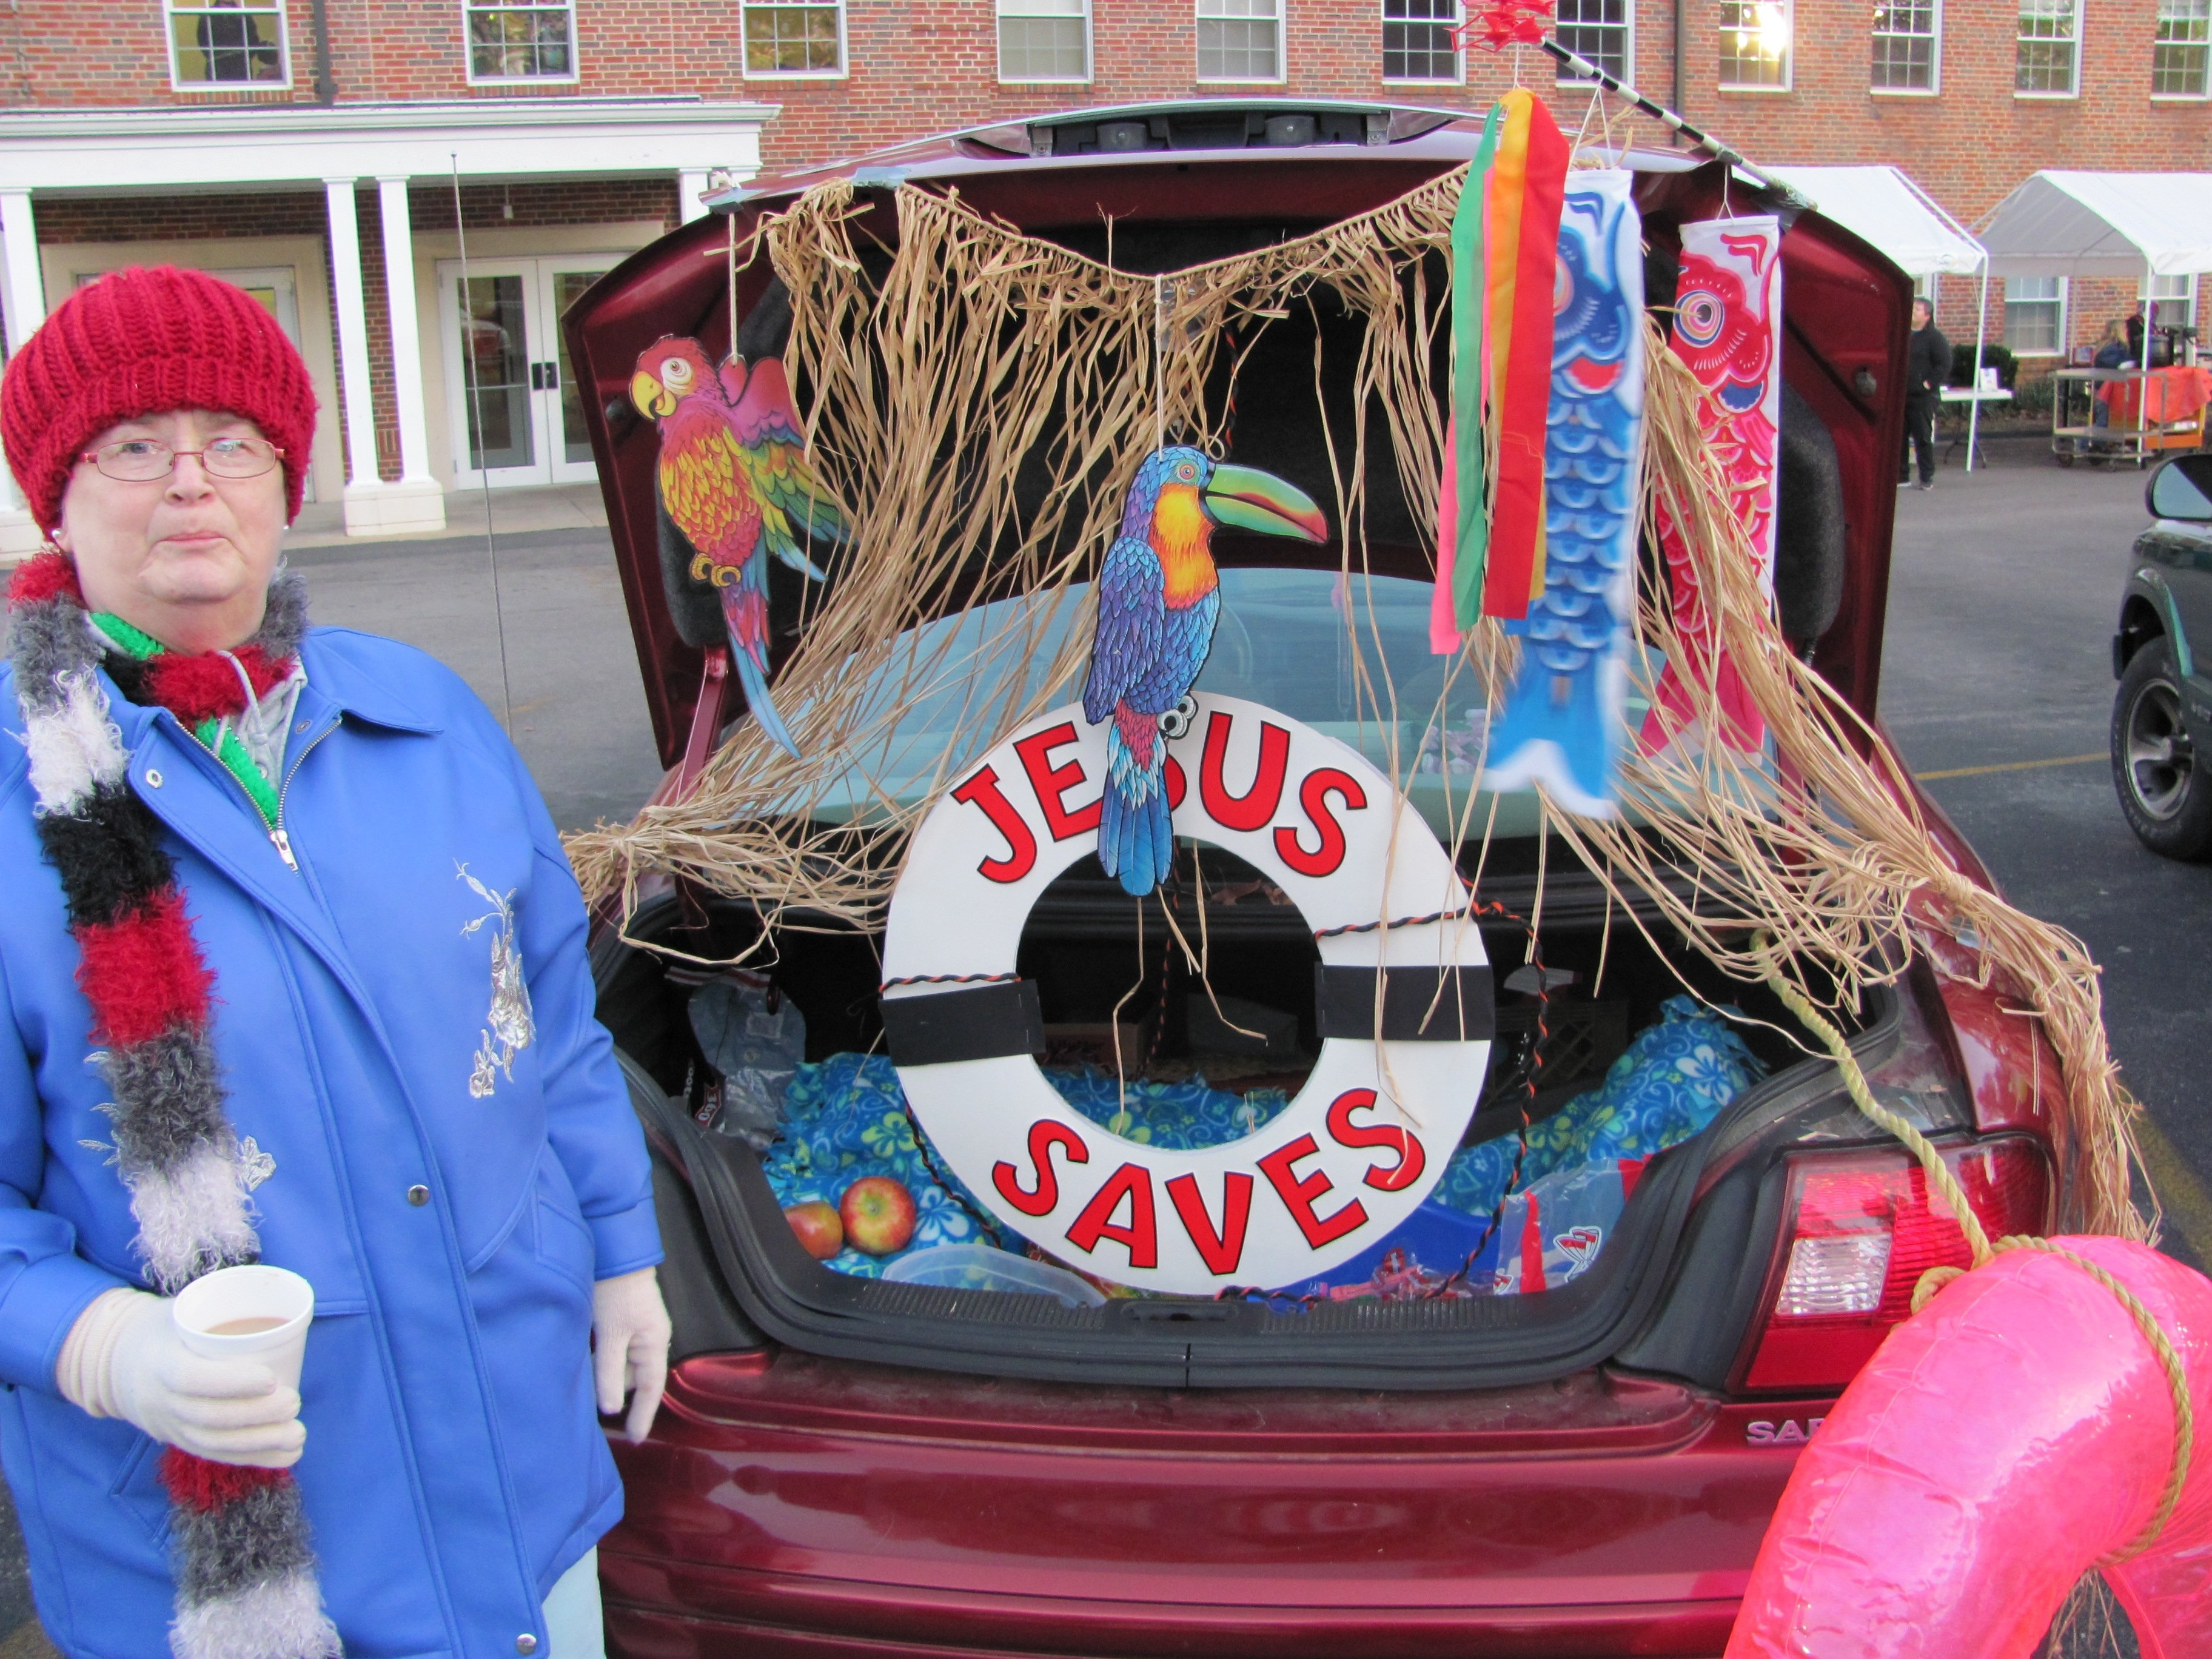 10 Attractive Biblical Trunk Or Treat Decorating Ideas remarkable trunk or treat decorating ideas on fall carnival trunk or 2020